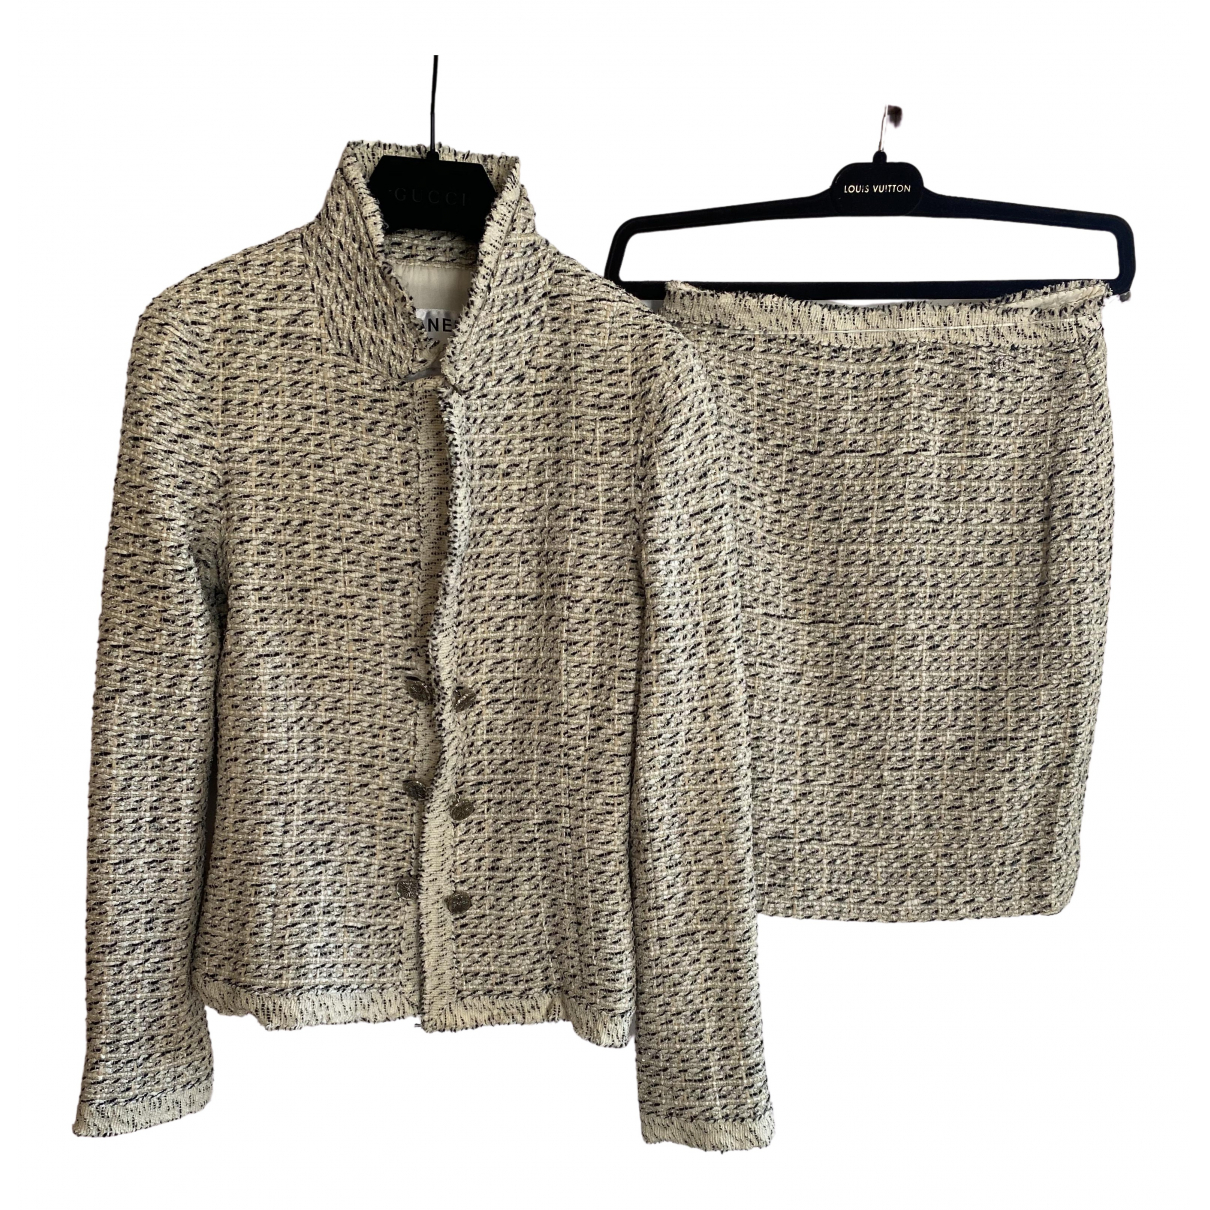 Chanel \N Cotton jacket for Women 36 FR